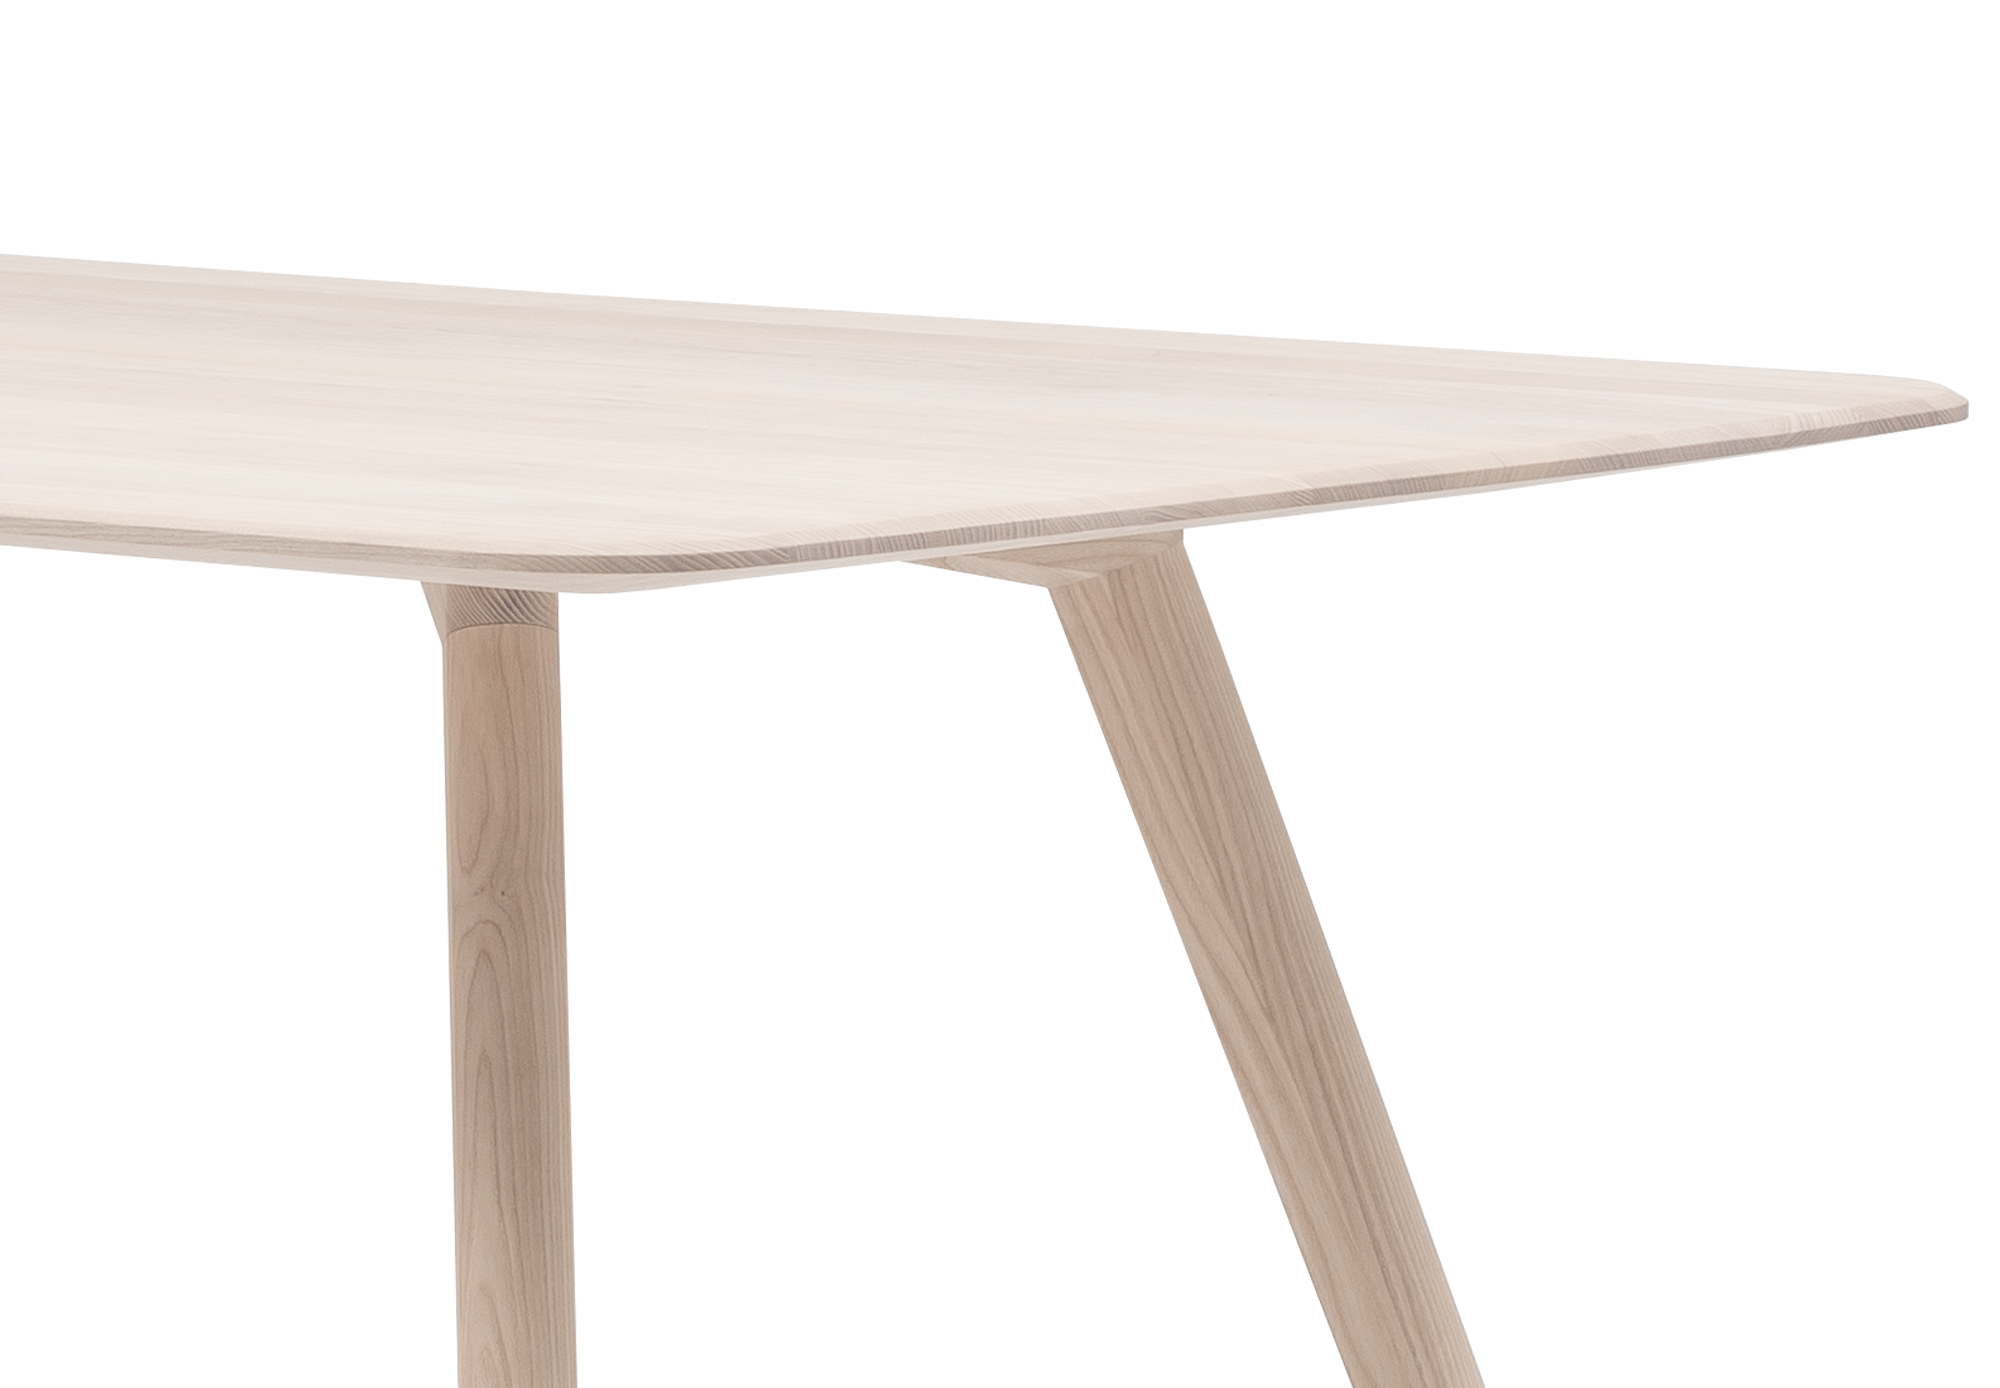 Meyer Designed By David Spinner Solid Ash Table Frontal Close Up Of The Table Top And Leg Mount Out Outgermany Objekte Unserer Tage Feine Mobel Esstisch